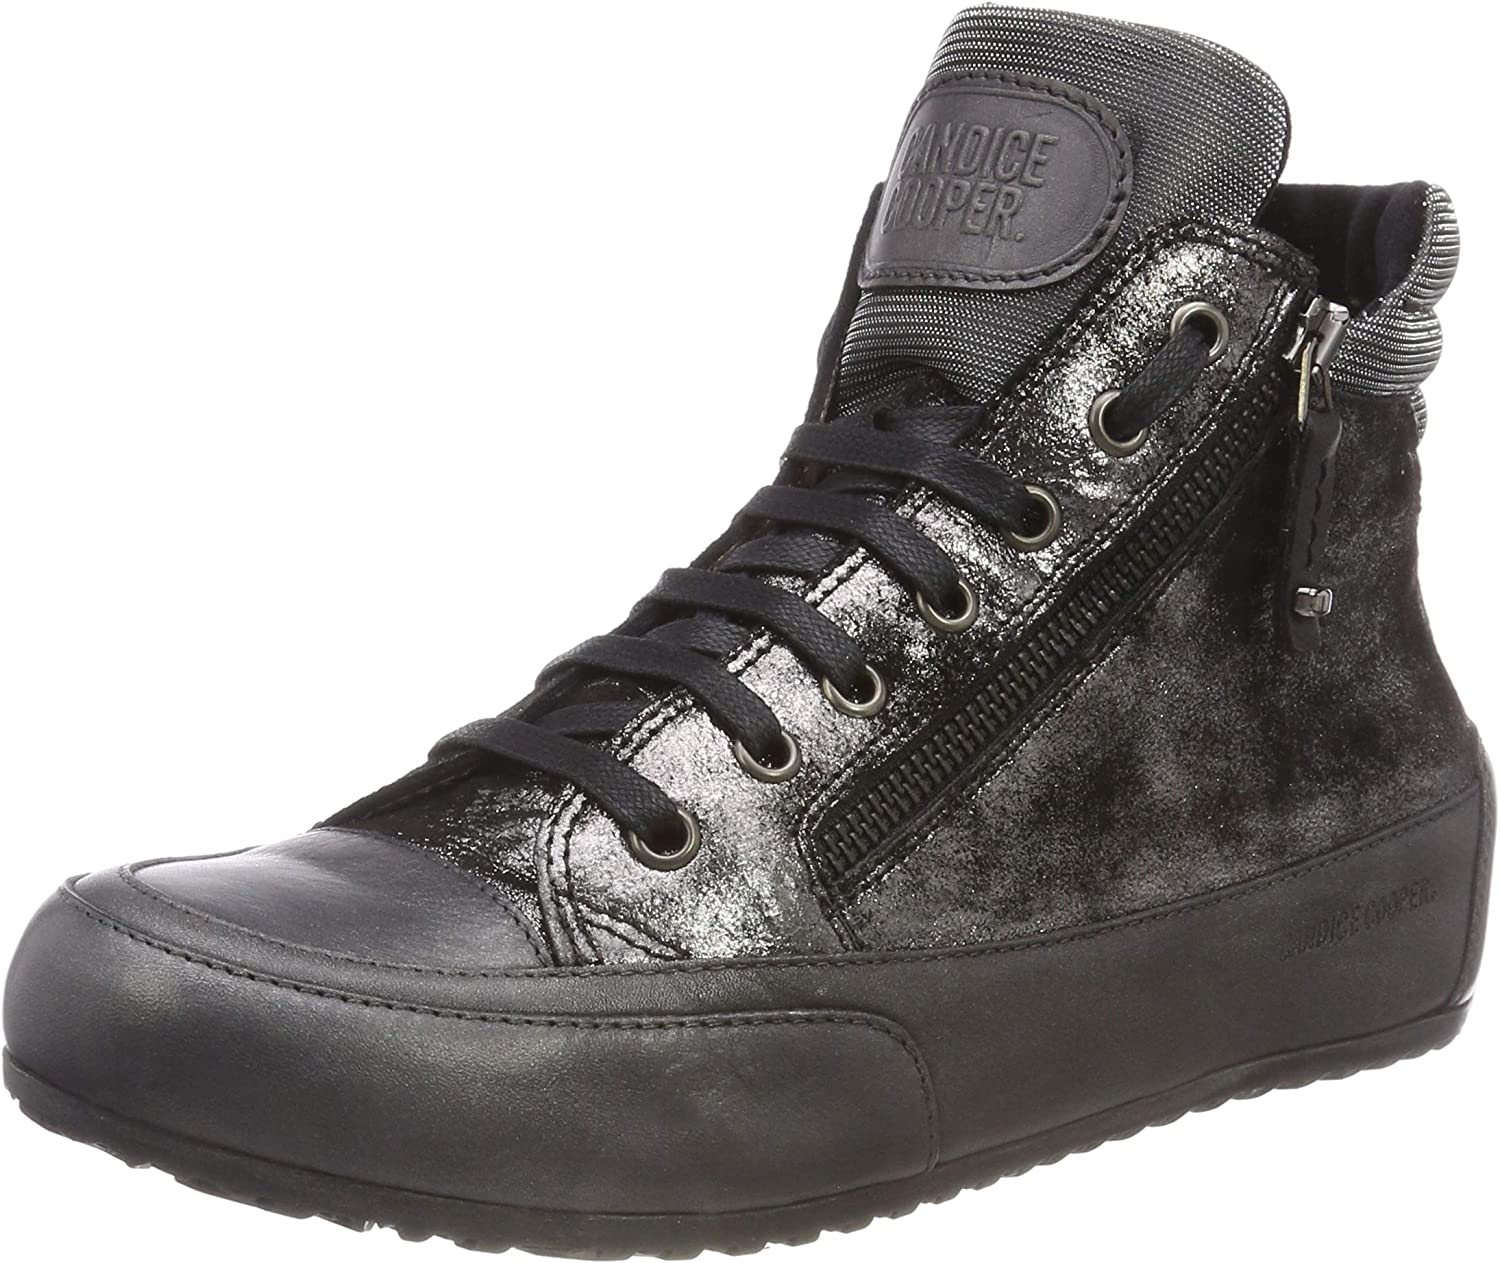 Candice Cooper Women's Monet color Hi-Top Trainers